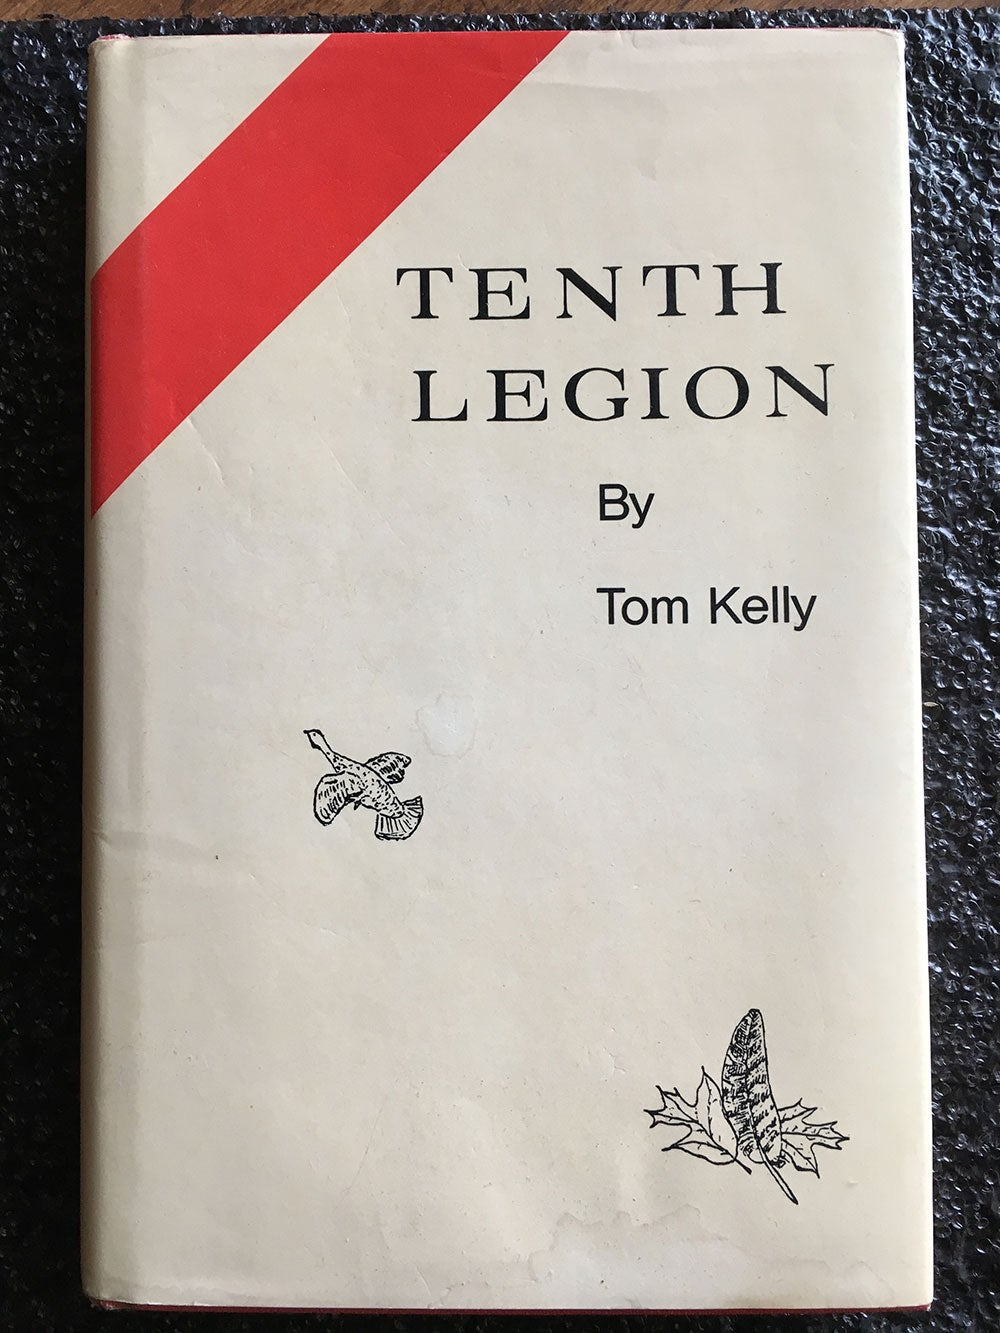 tenth legion book cover by tom kelly